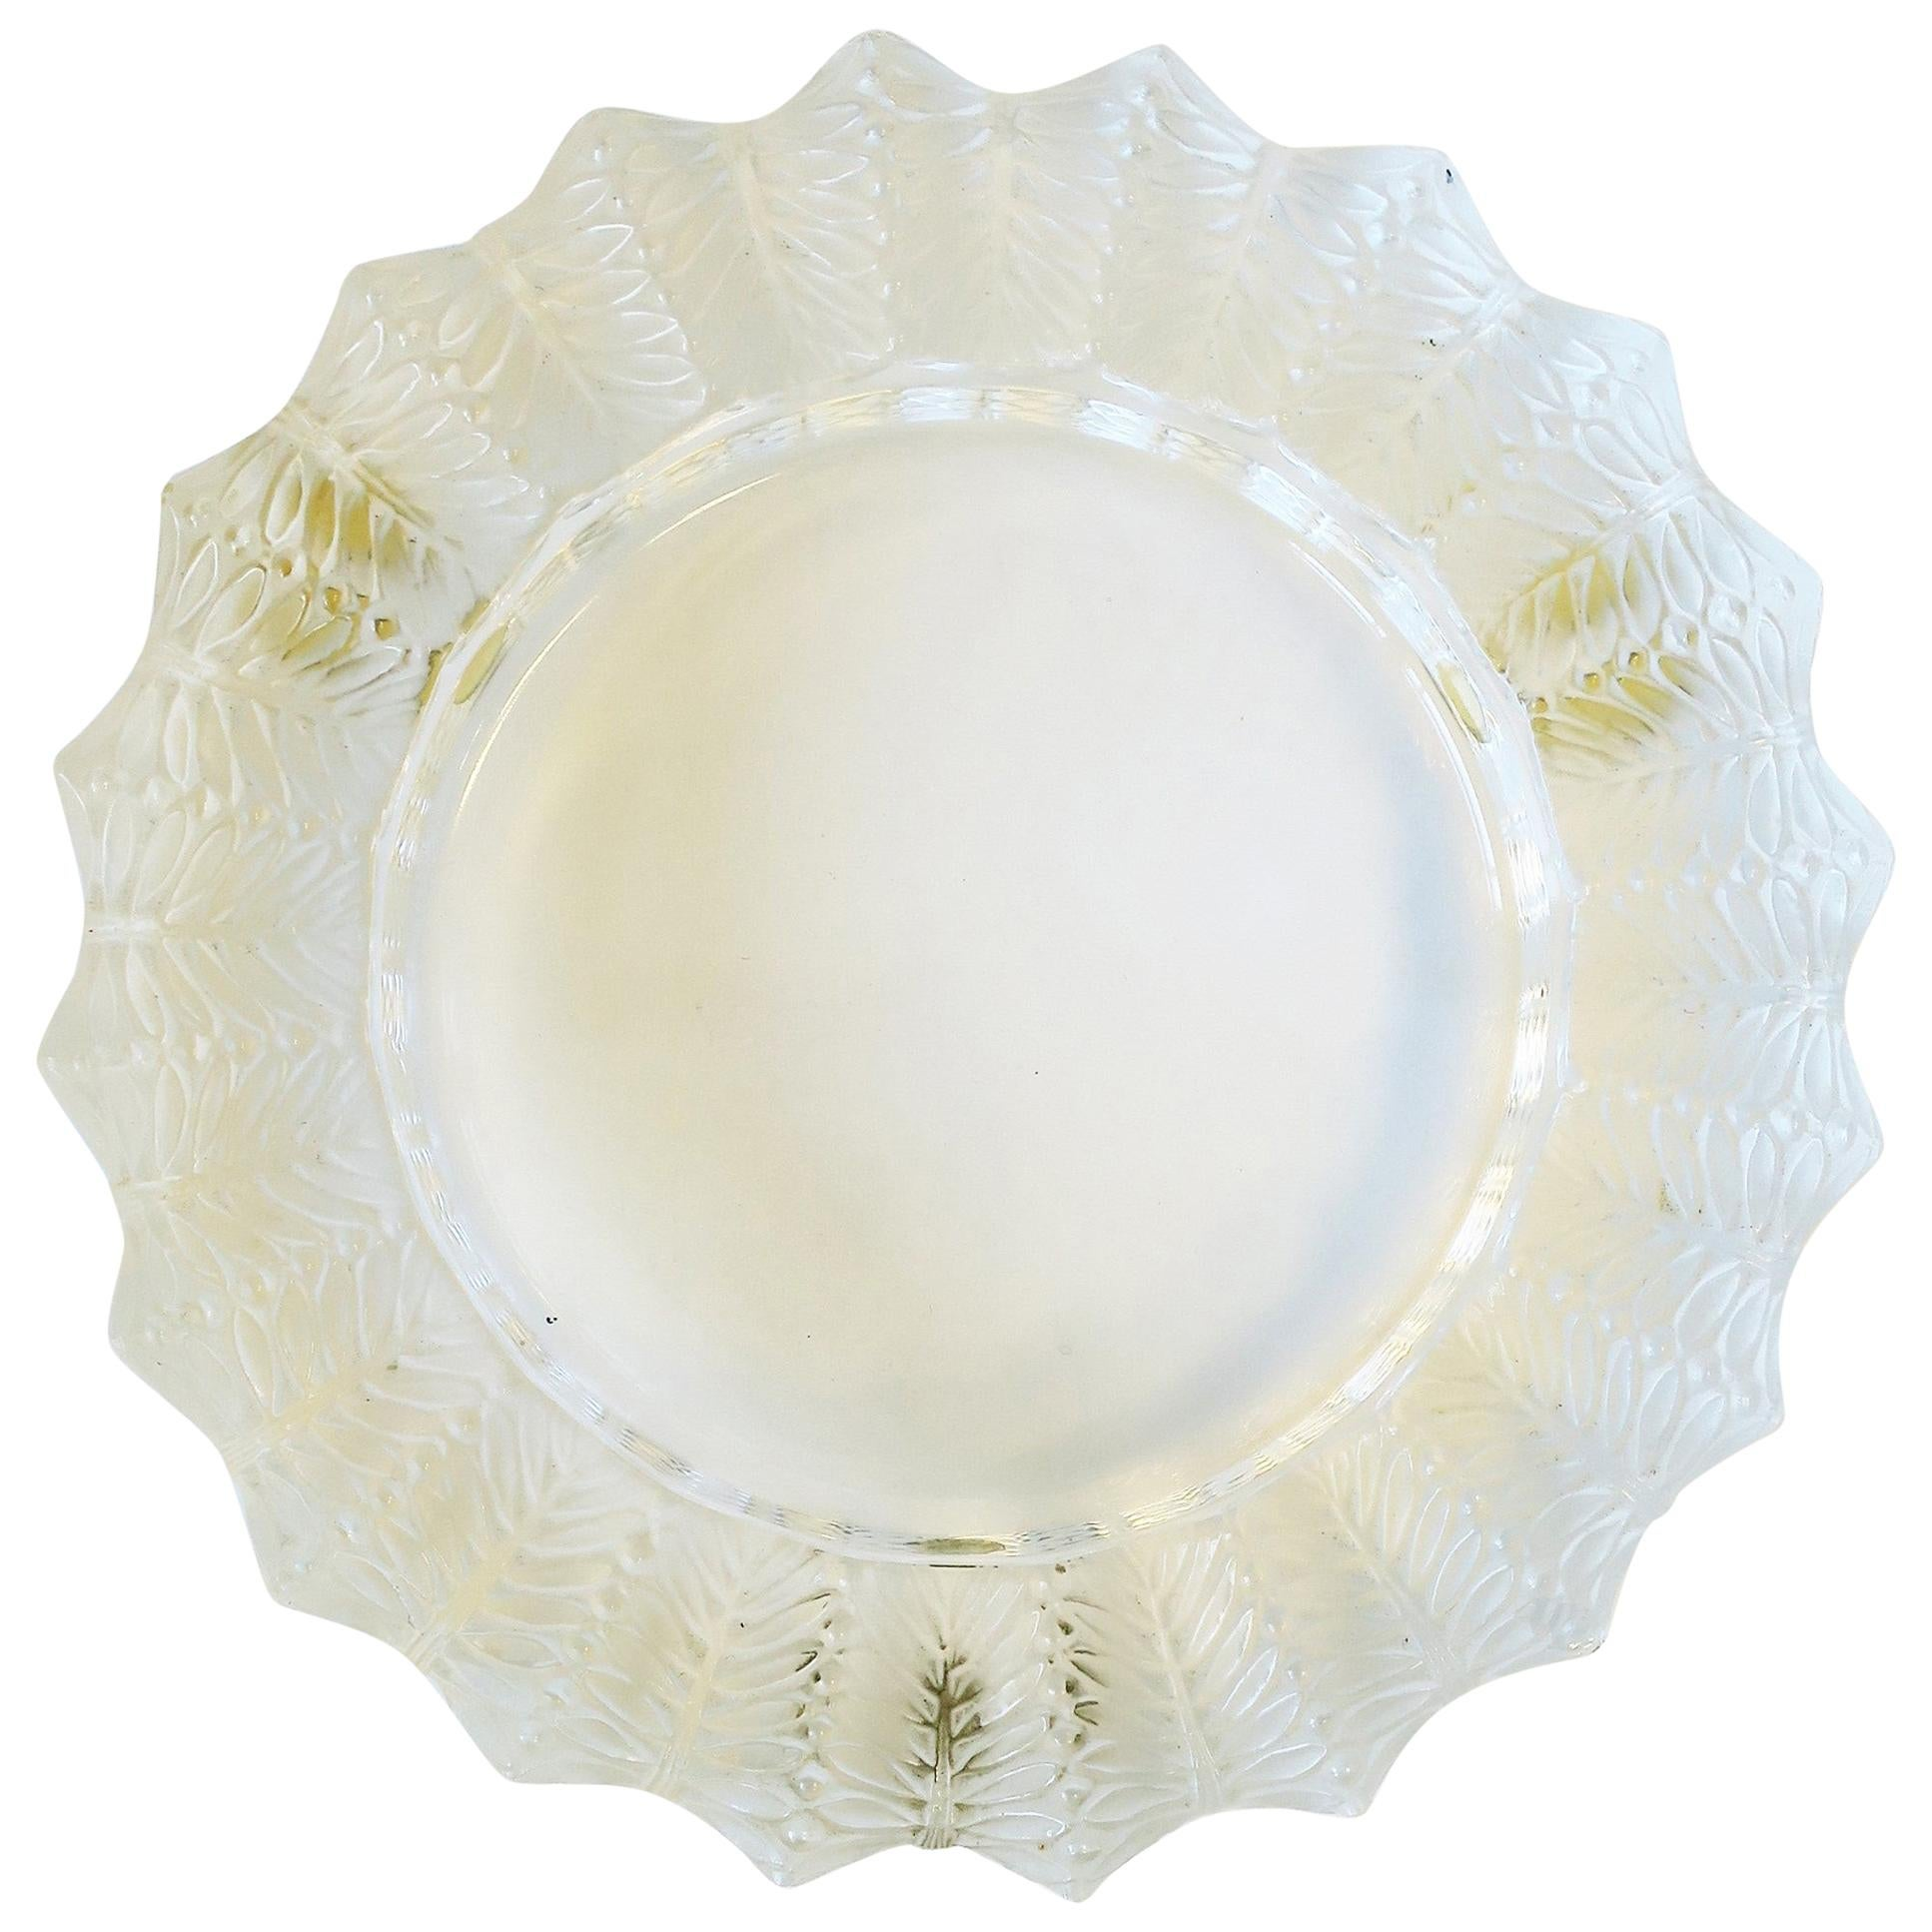 Lalique French Crystal Dish or Ashtray with Leaf Design